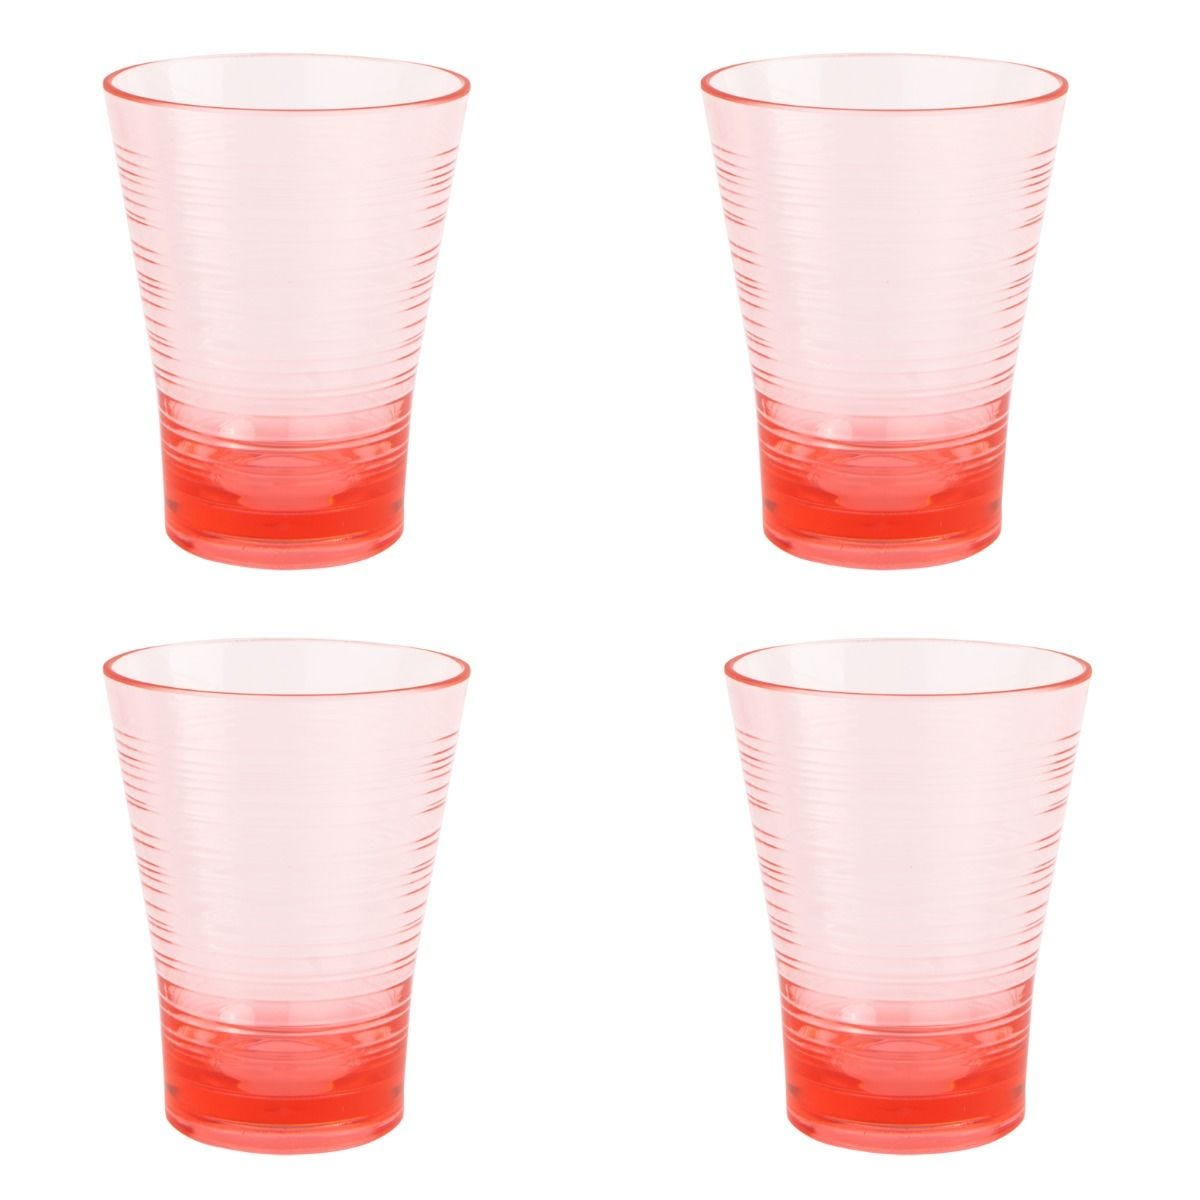 Summerhouse Set of 4 Plastic Tumblers - Candy Pink